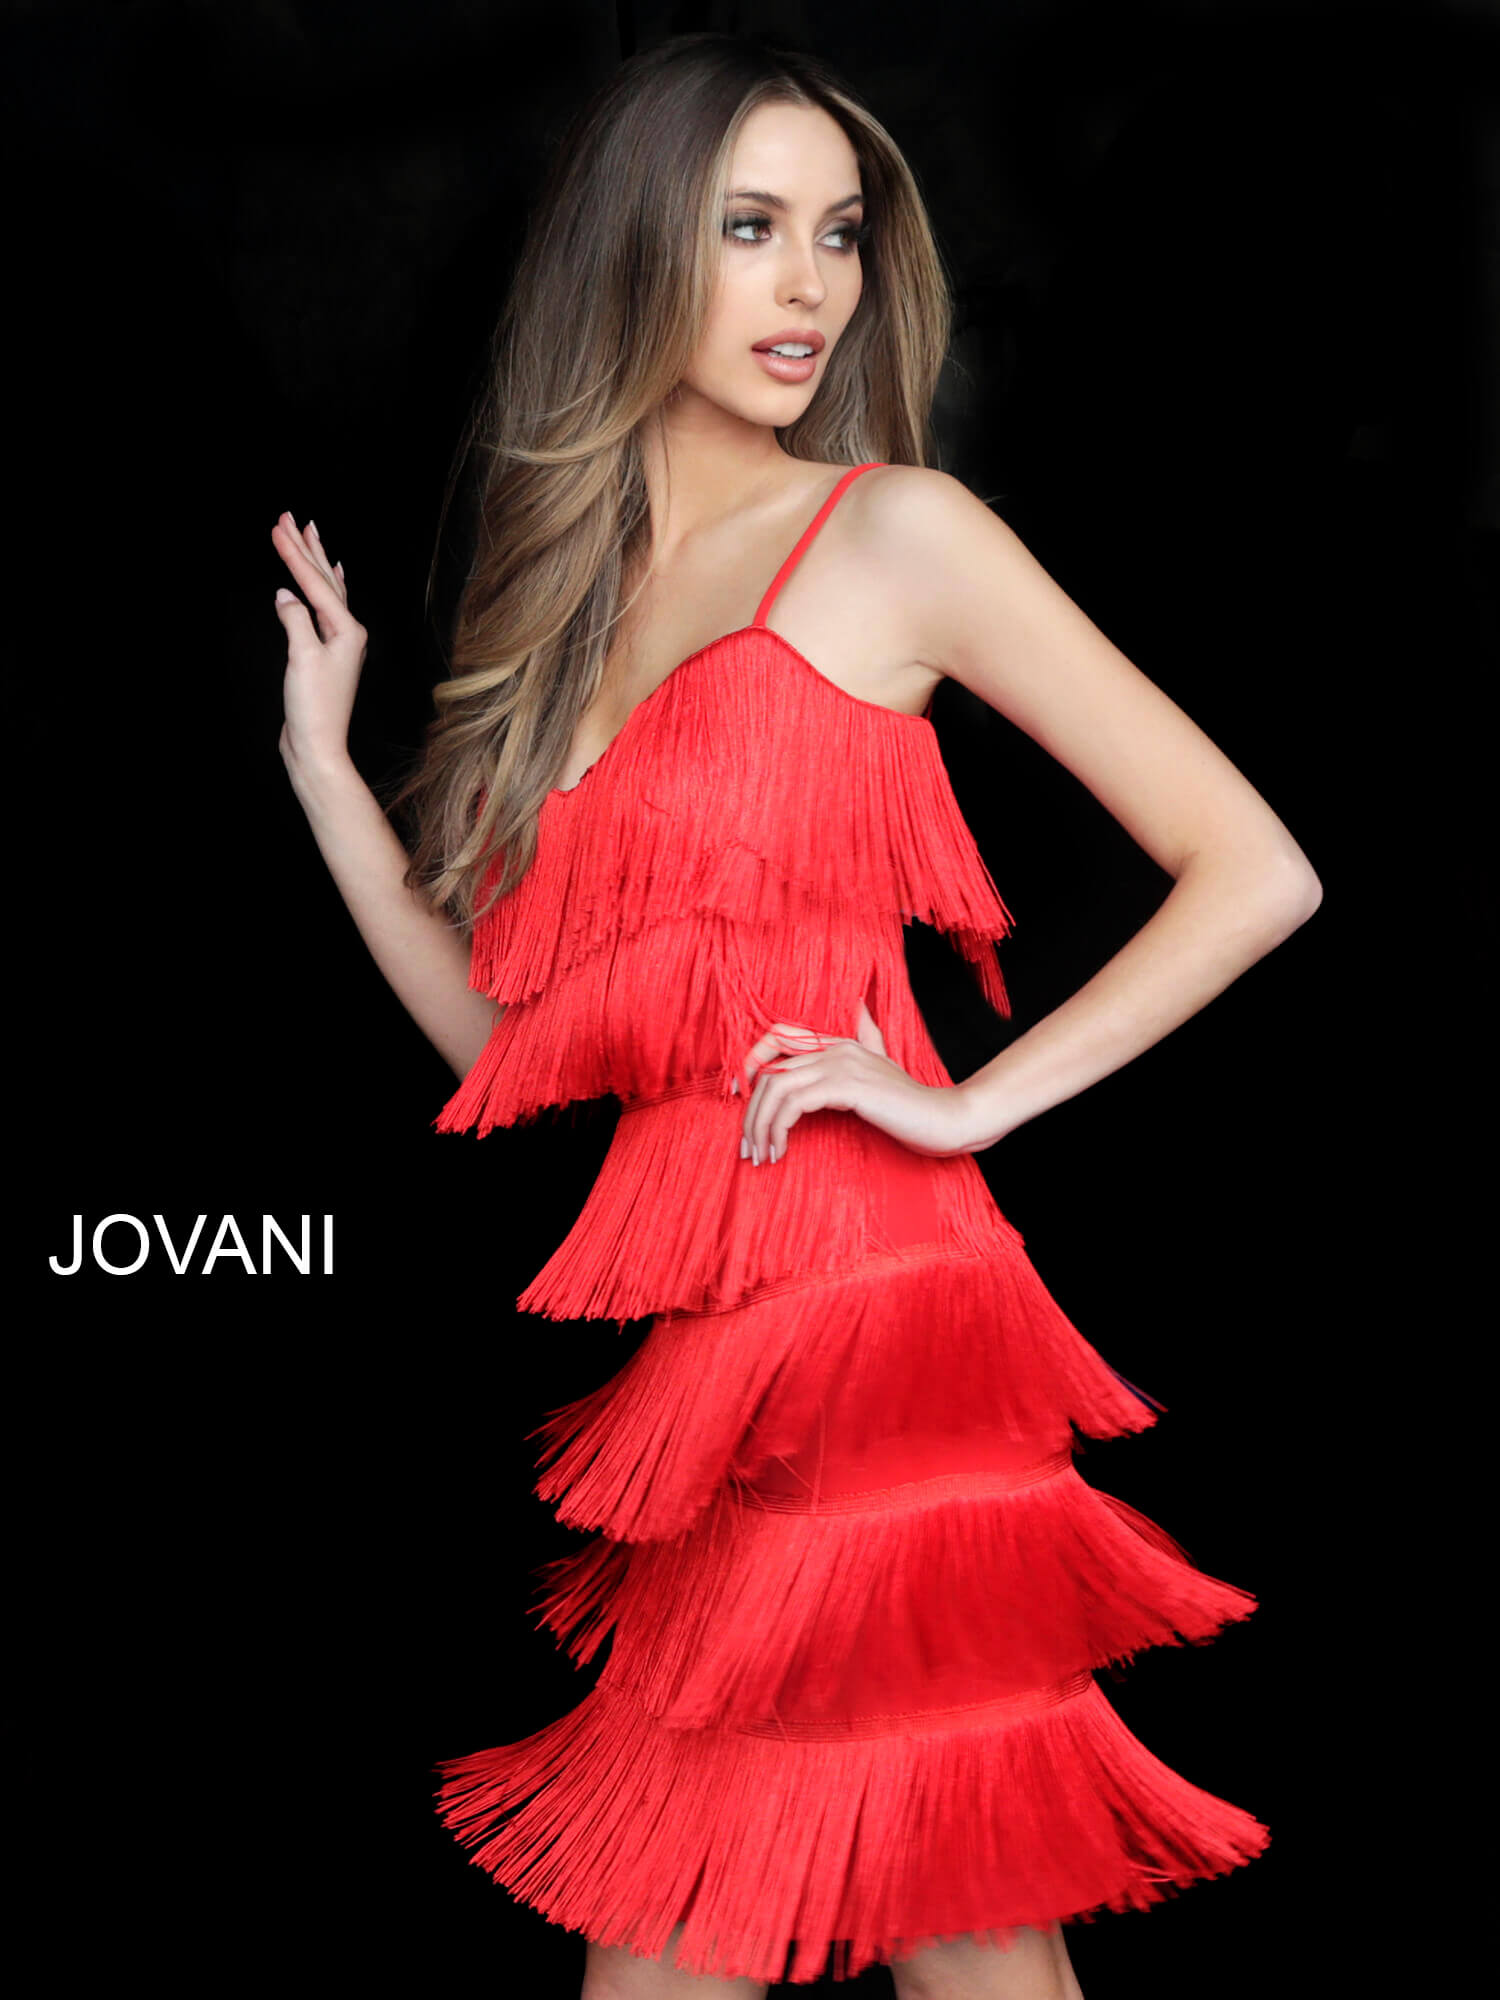 jovani Jovani 35735 Red Spaghetti Straps Fringe Cocktail Dress  on mobile 7